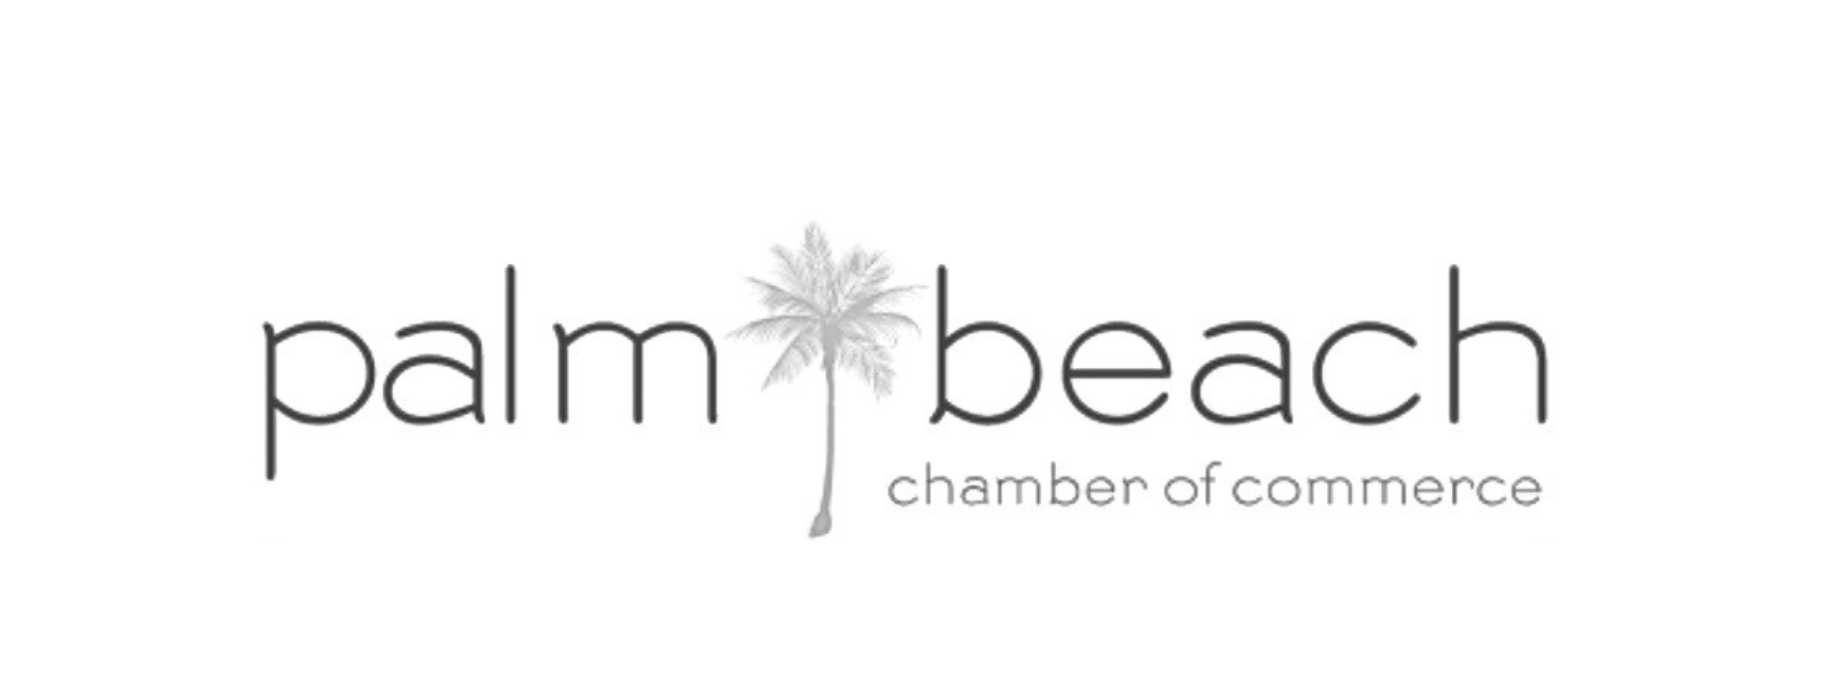 Palm Beach Chamber Commerce logo 2 bw-1